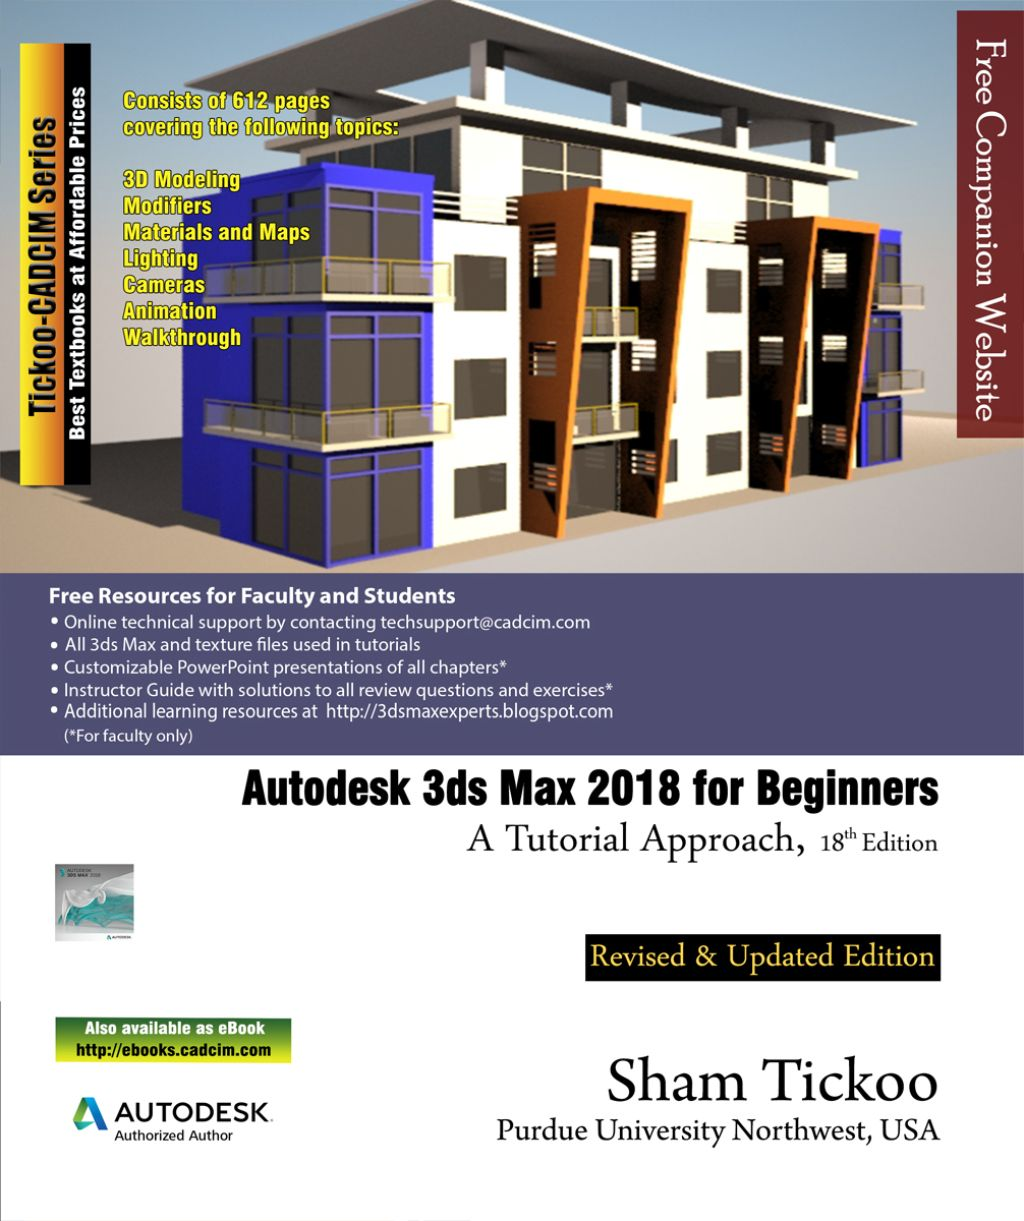 Autodesk 3ds Max 2018 for Novices Learn By Doing